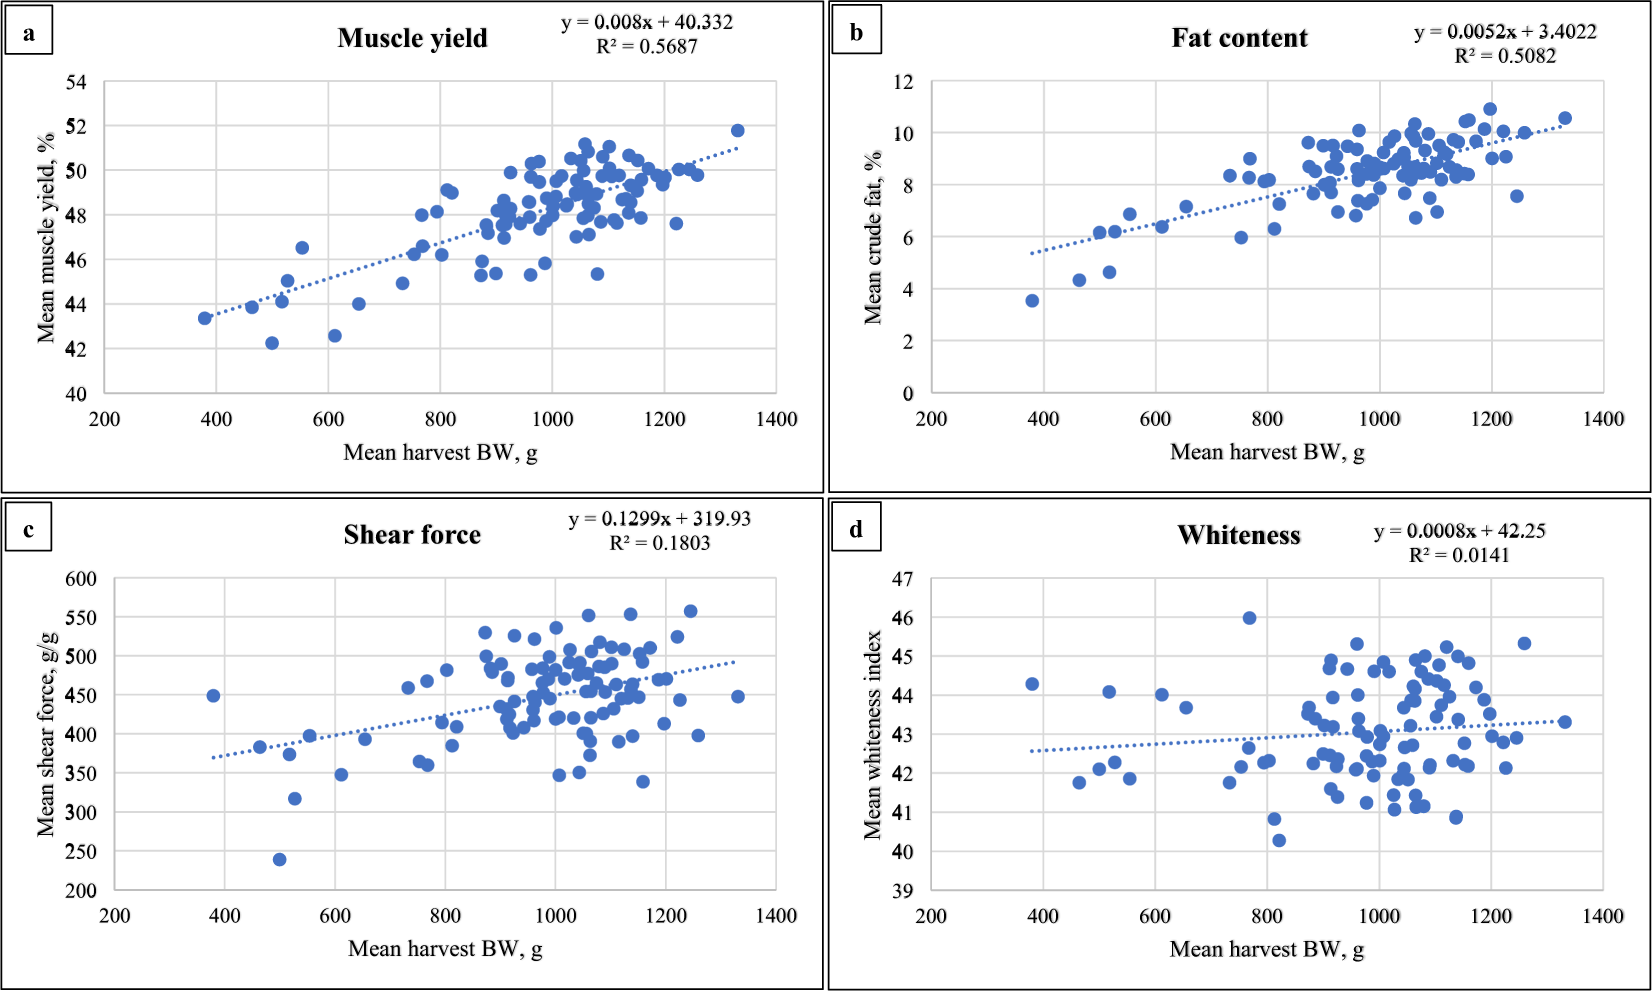 Integrated Analysis Of Lncrna And Mrna Expression In Rainbow Trout Families Showing Variation In Muscle Growth And Fillet Quality Traits Scientific